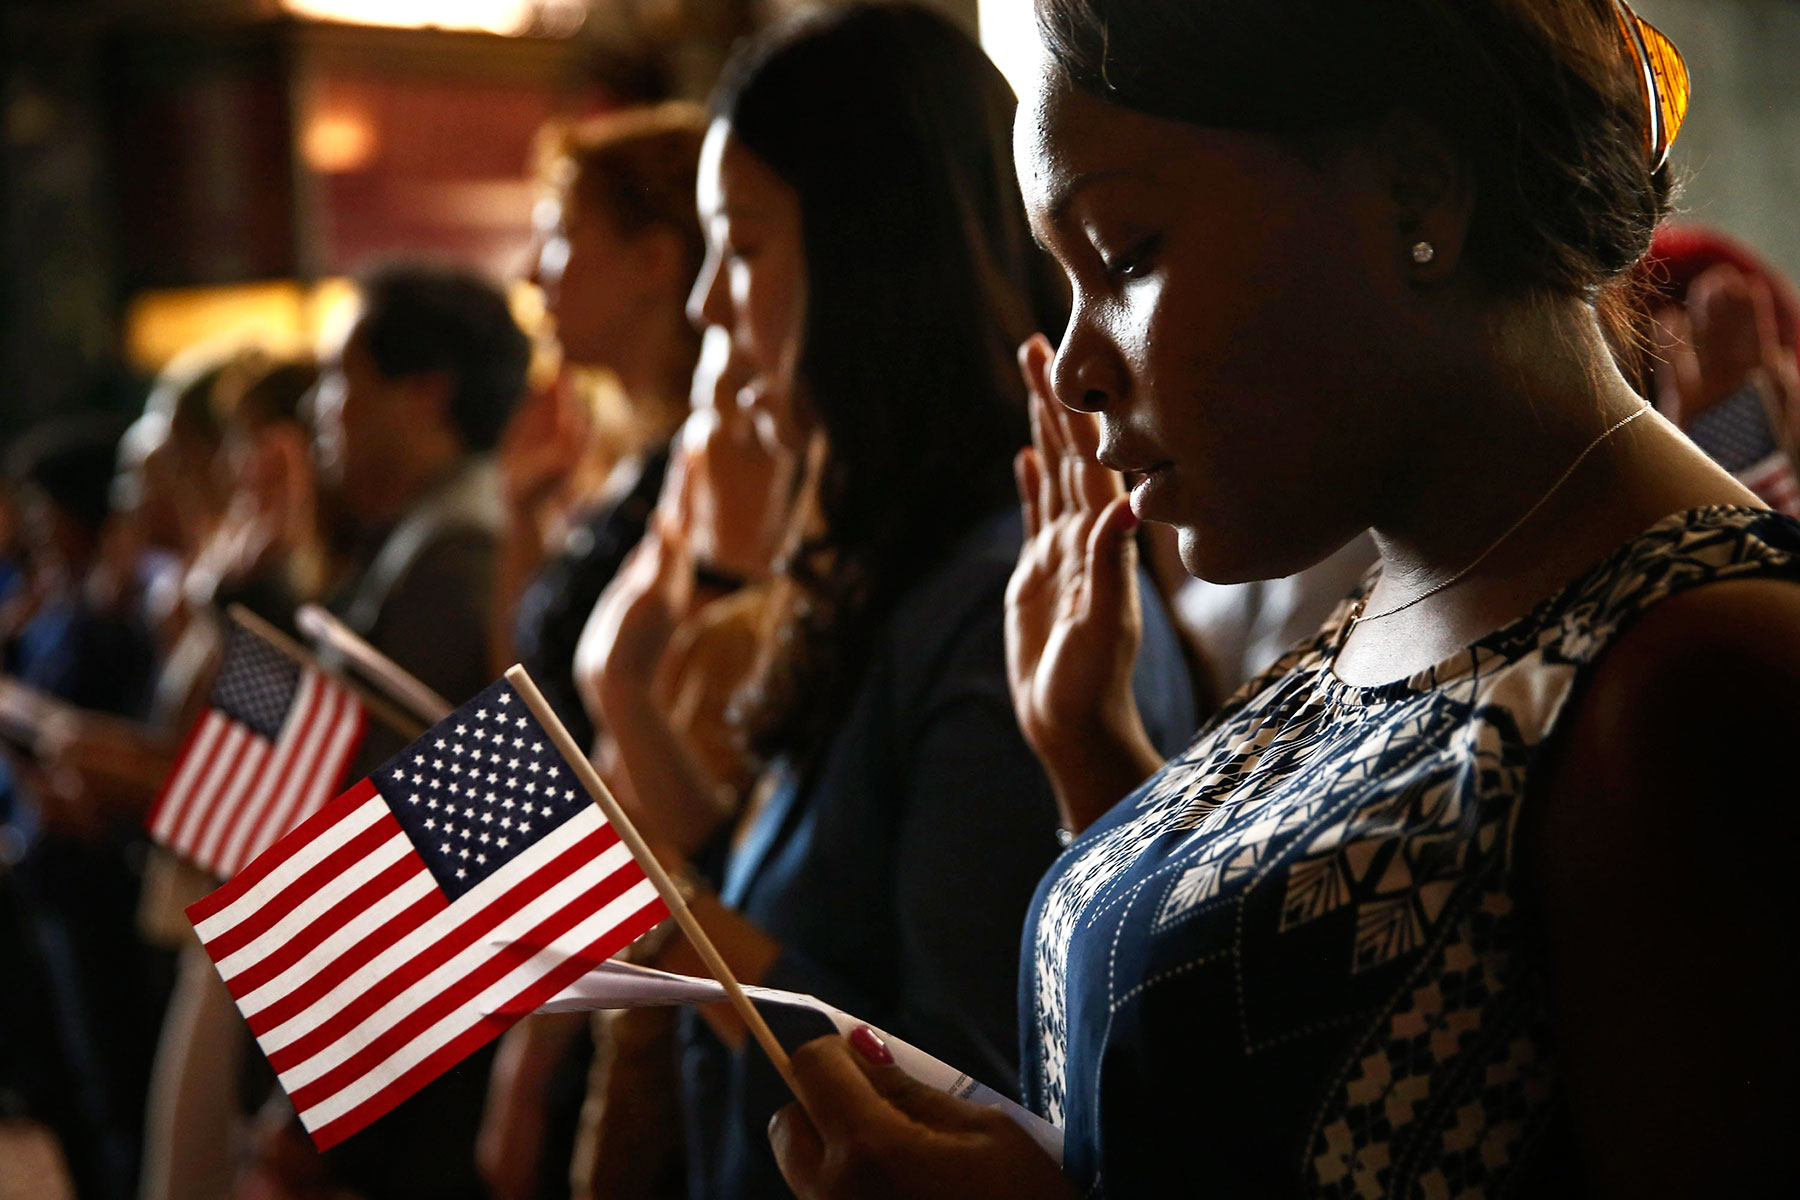 Vishaun Lawrence of Jamaica during a naturalization ceremony in Chicago last year.